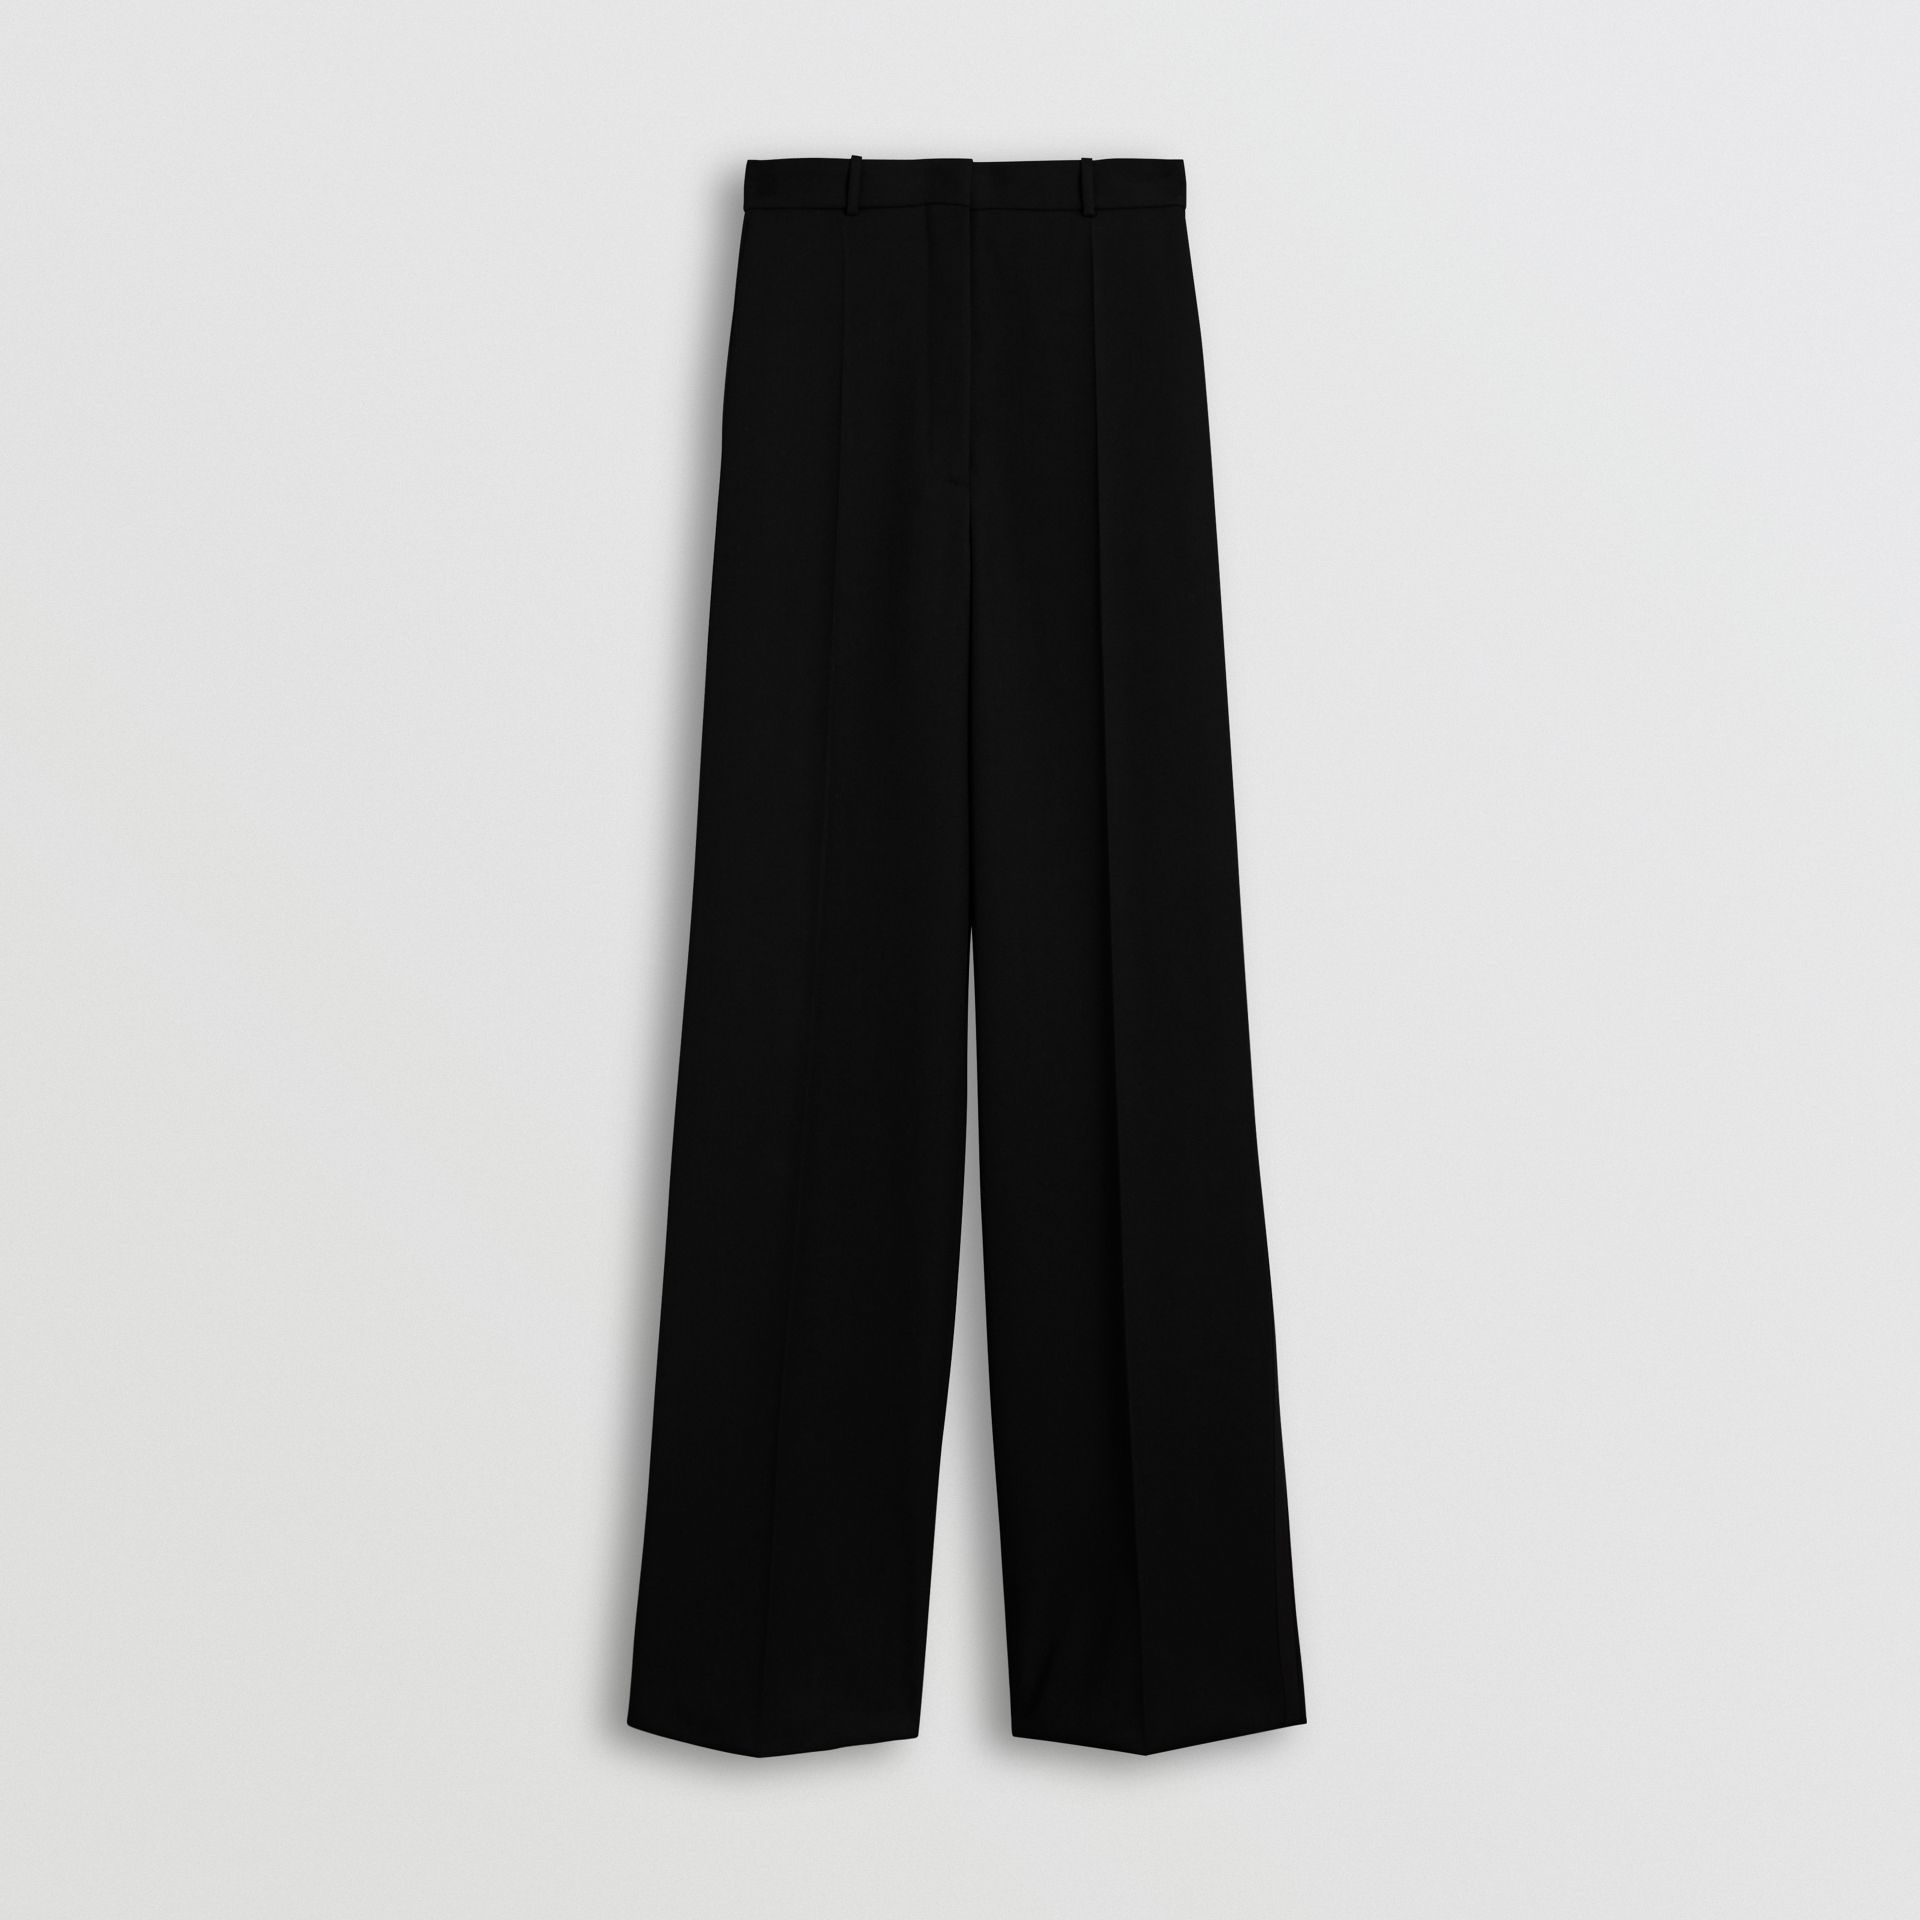 Wool High-waisted Trousers in Black - Women | Burberry - gallery image 3